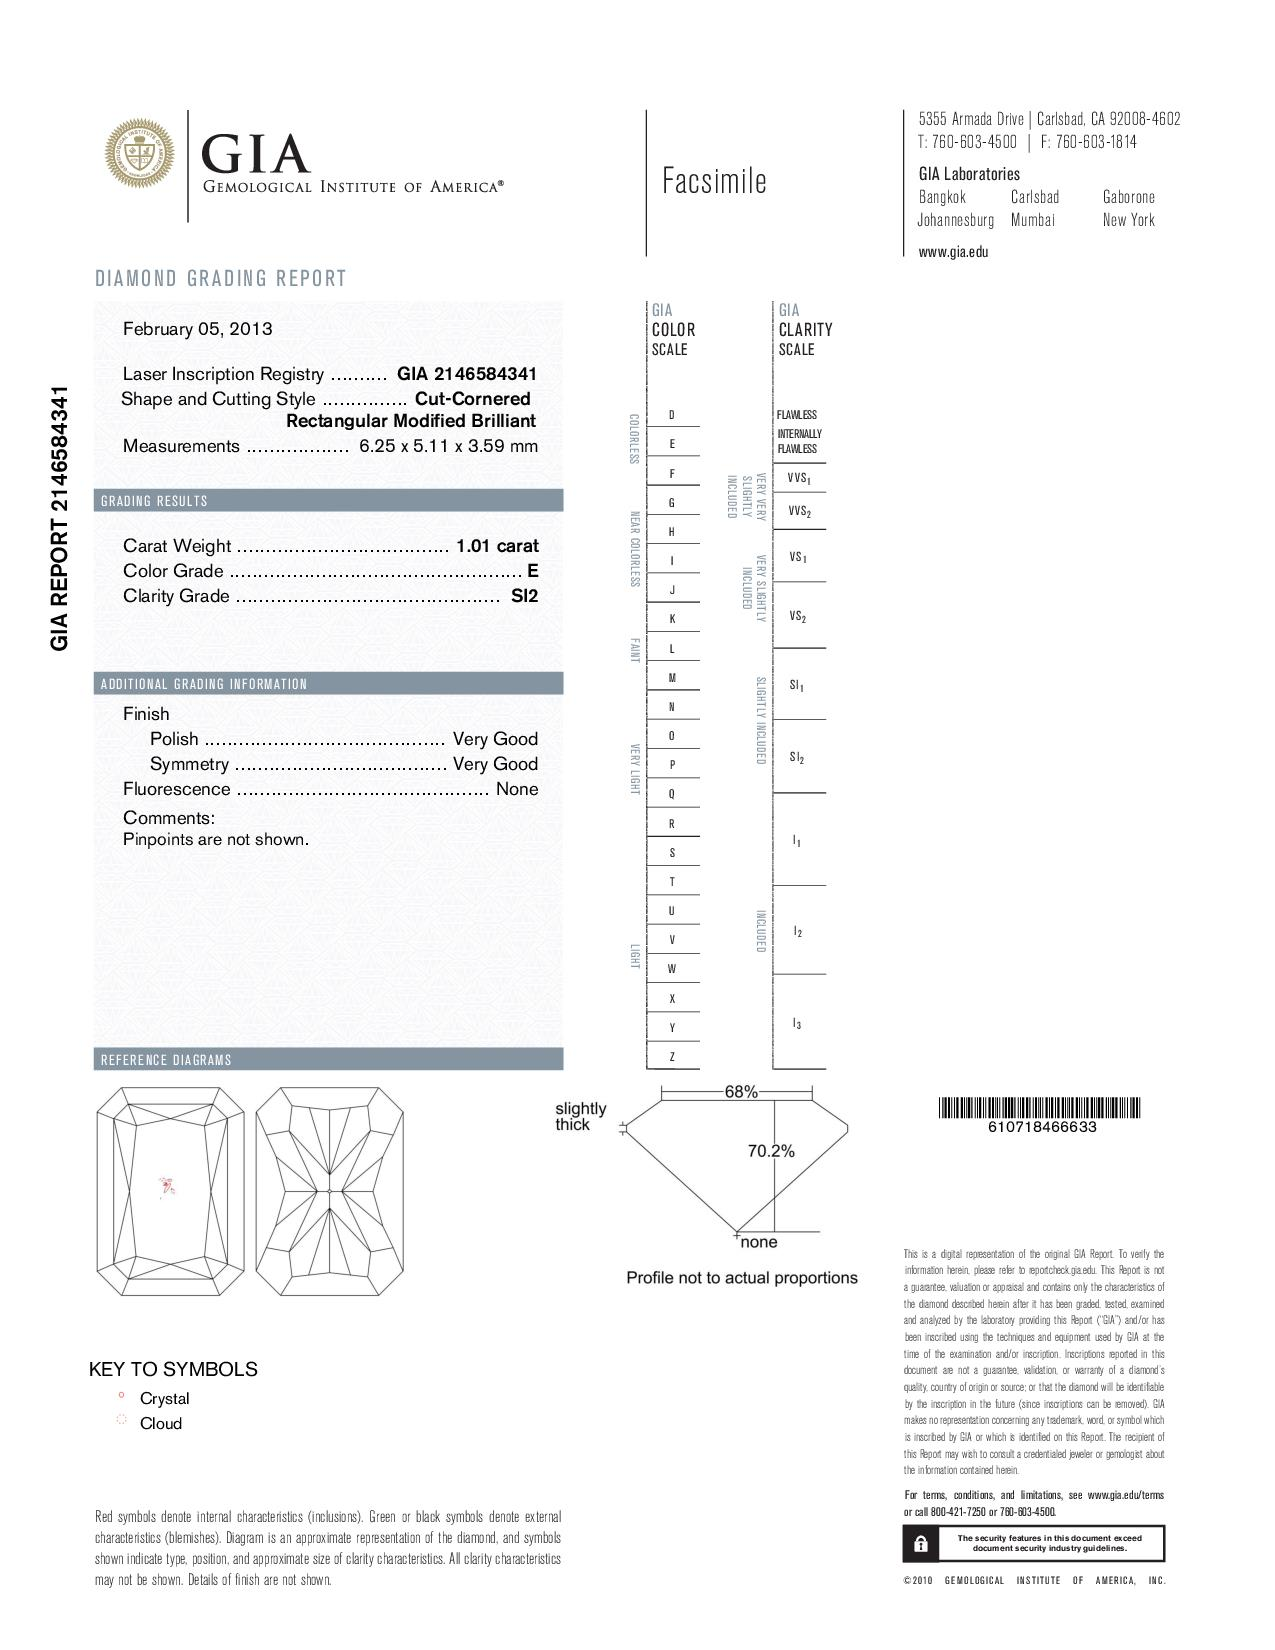 This is a 1.01 carat radiant shape, E color, SI2 clarity natural diamond accompanied by a GIA grading report.